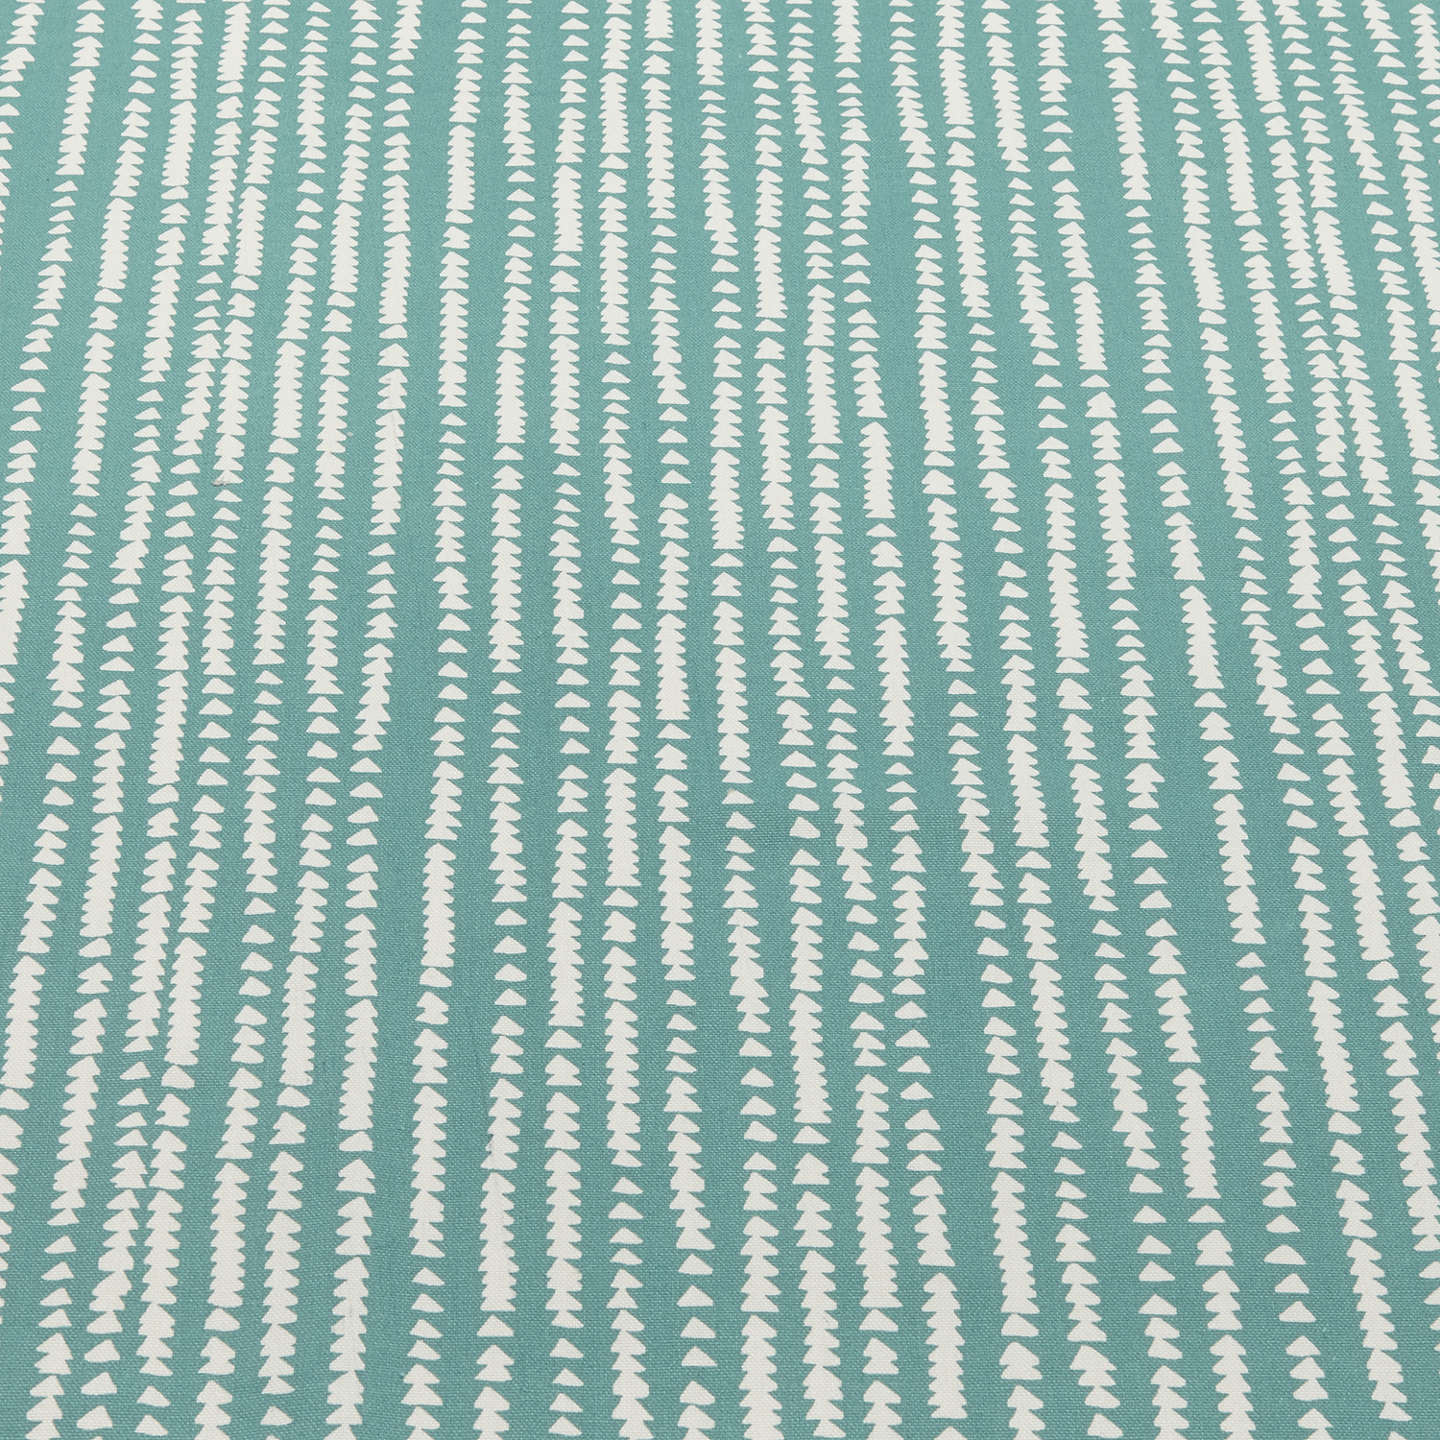 BuyJohn Lewis Xander Reverse PVC Tablecloth Fabric Online at johnlewis.com